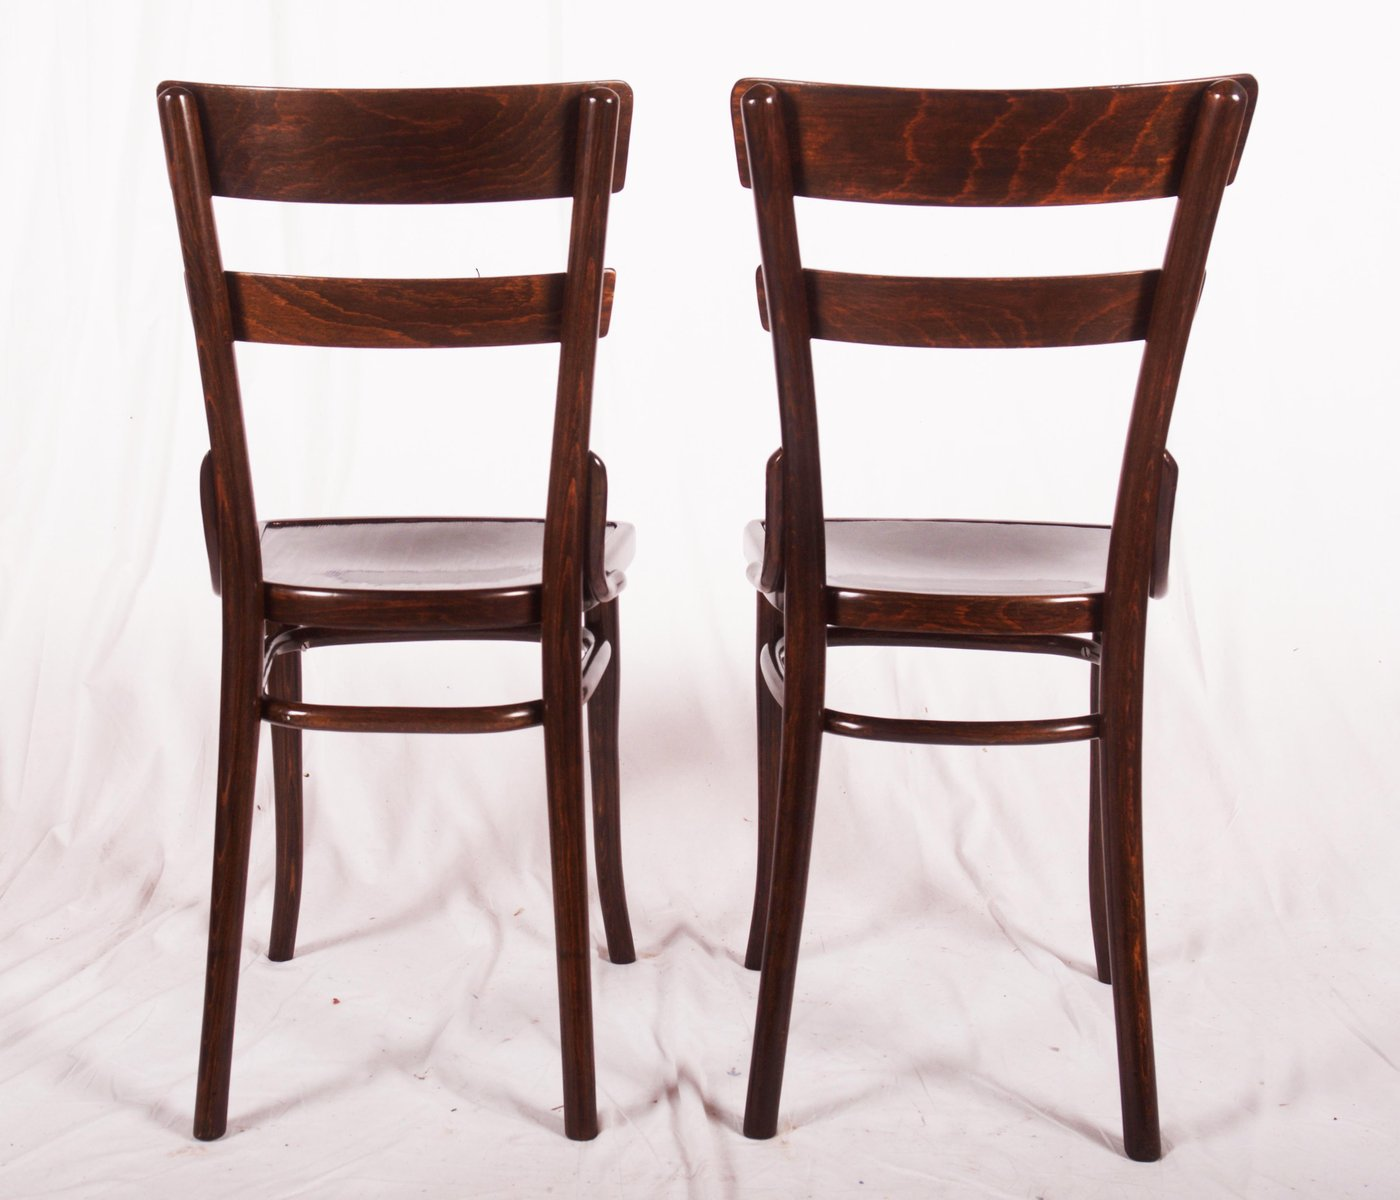 Antique Dining Room Chairs For Sale: Antique Dining Room Chair, 1900 For Sale At Pamono